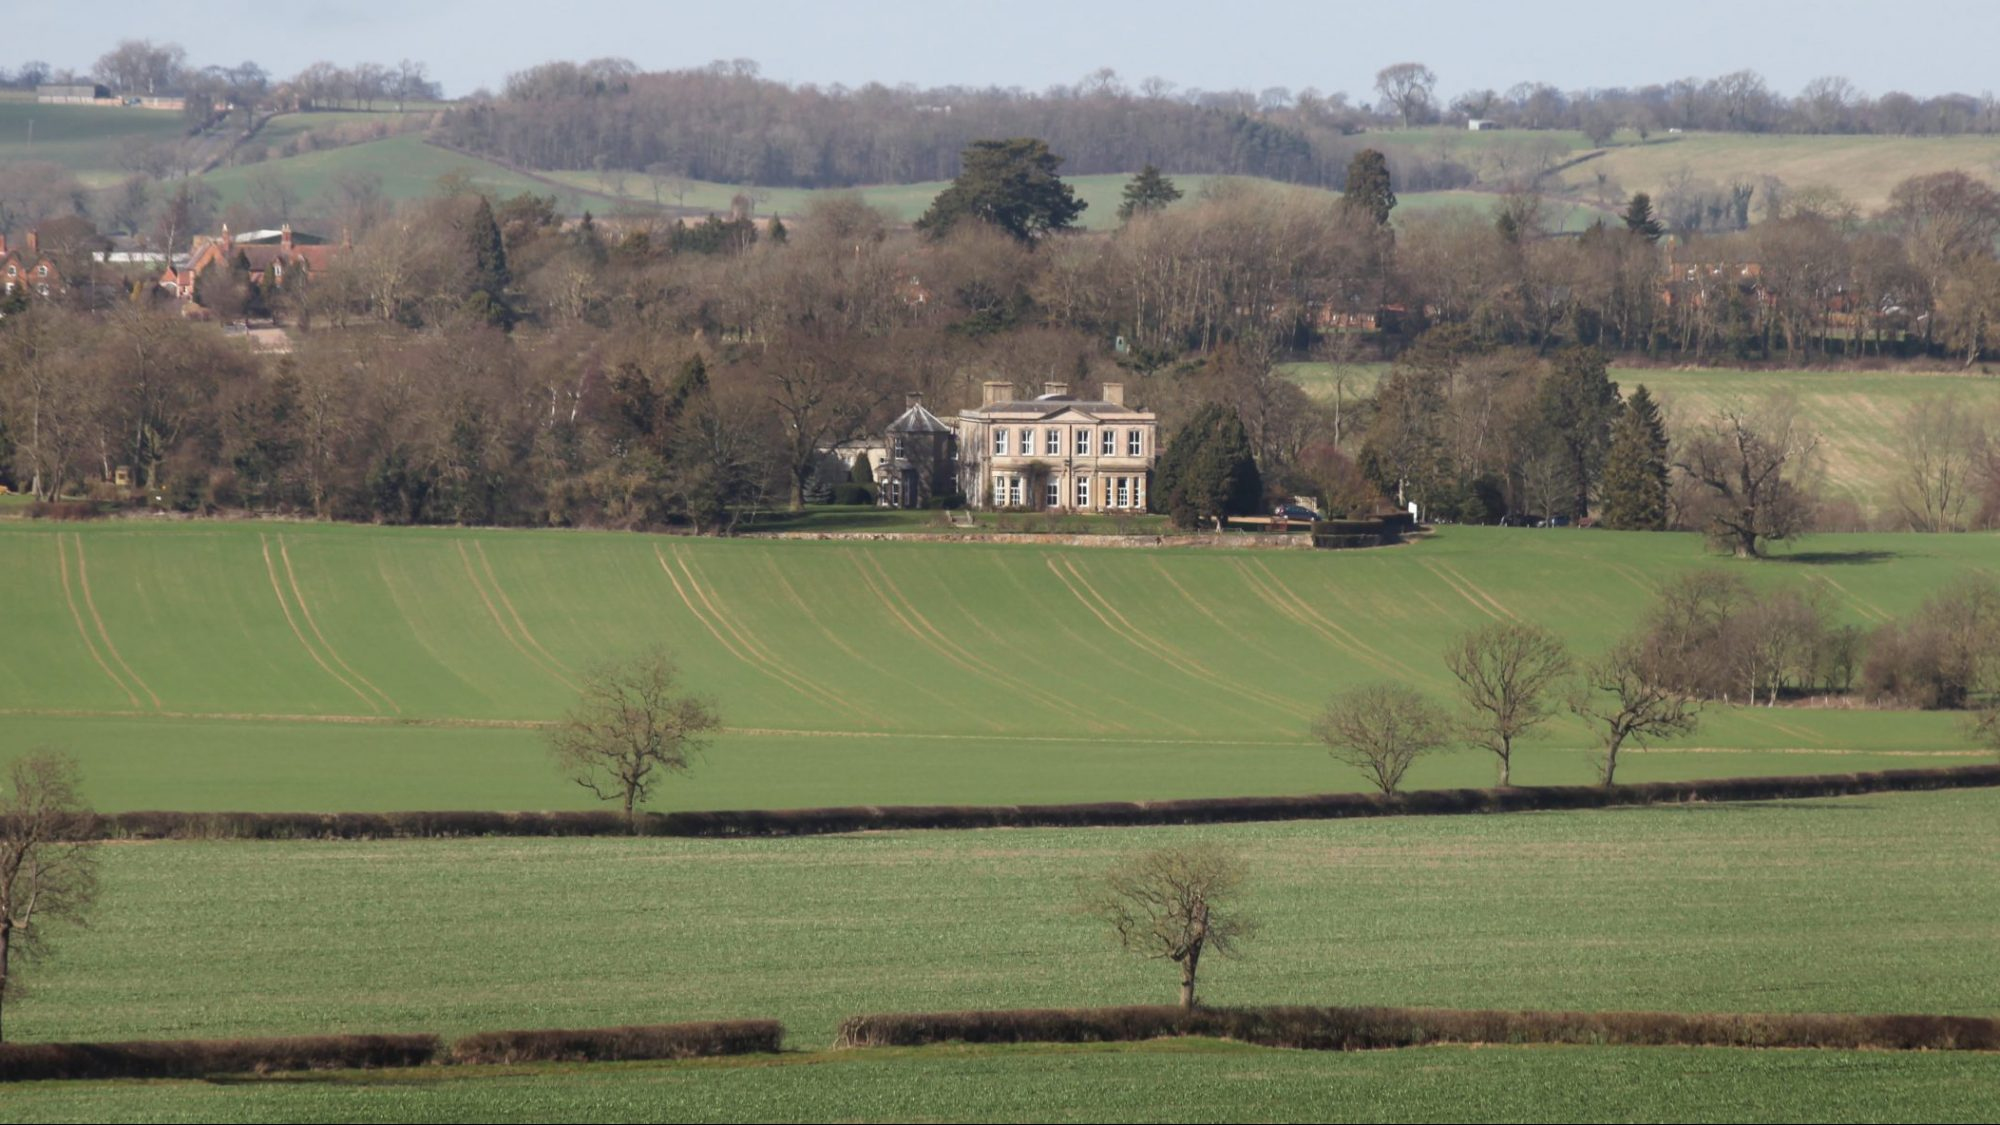 Landscape view of Hothorpe Hall